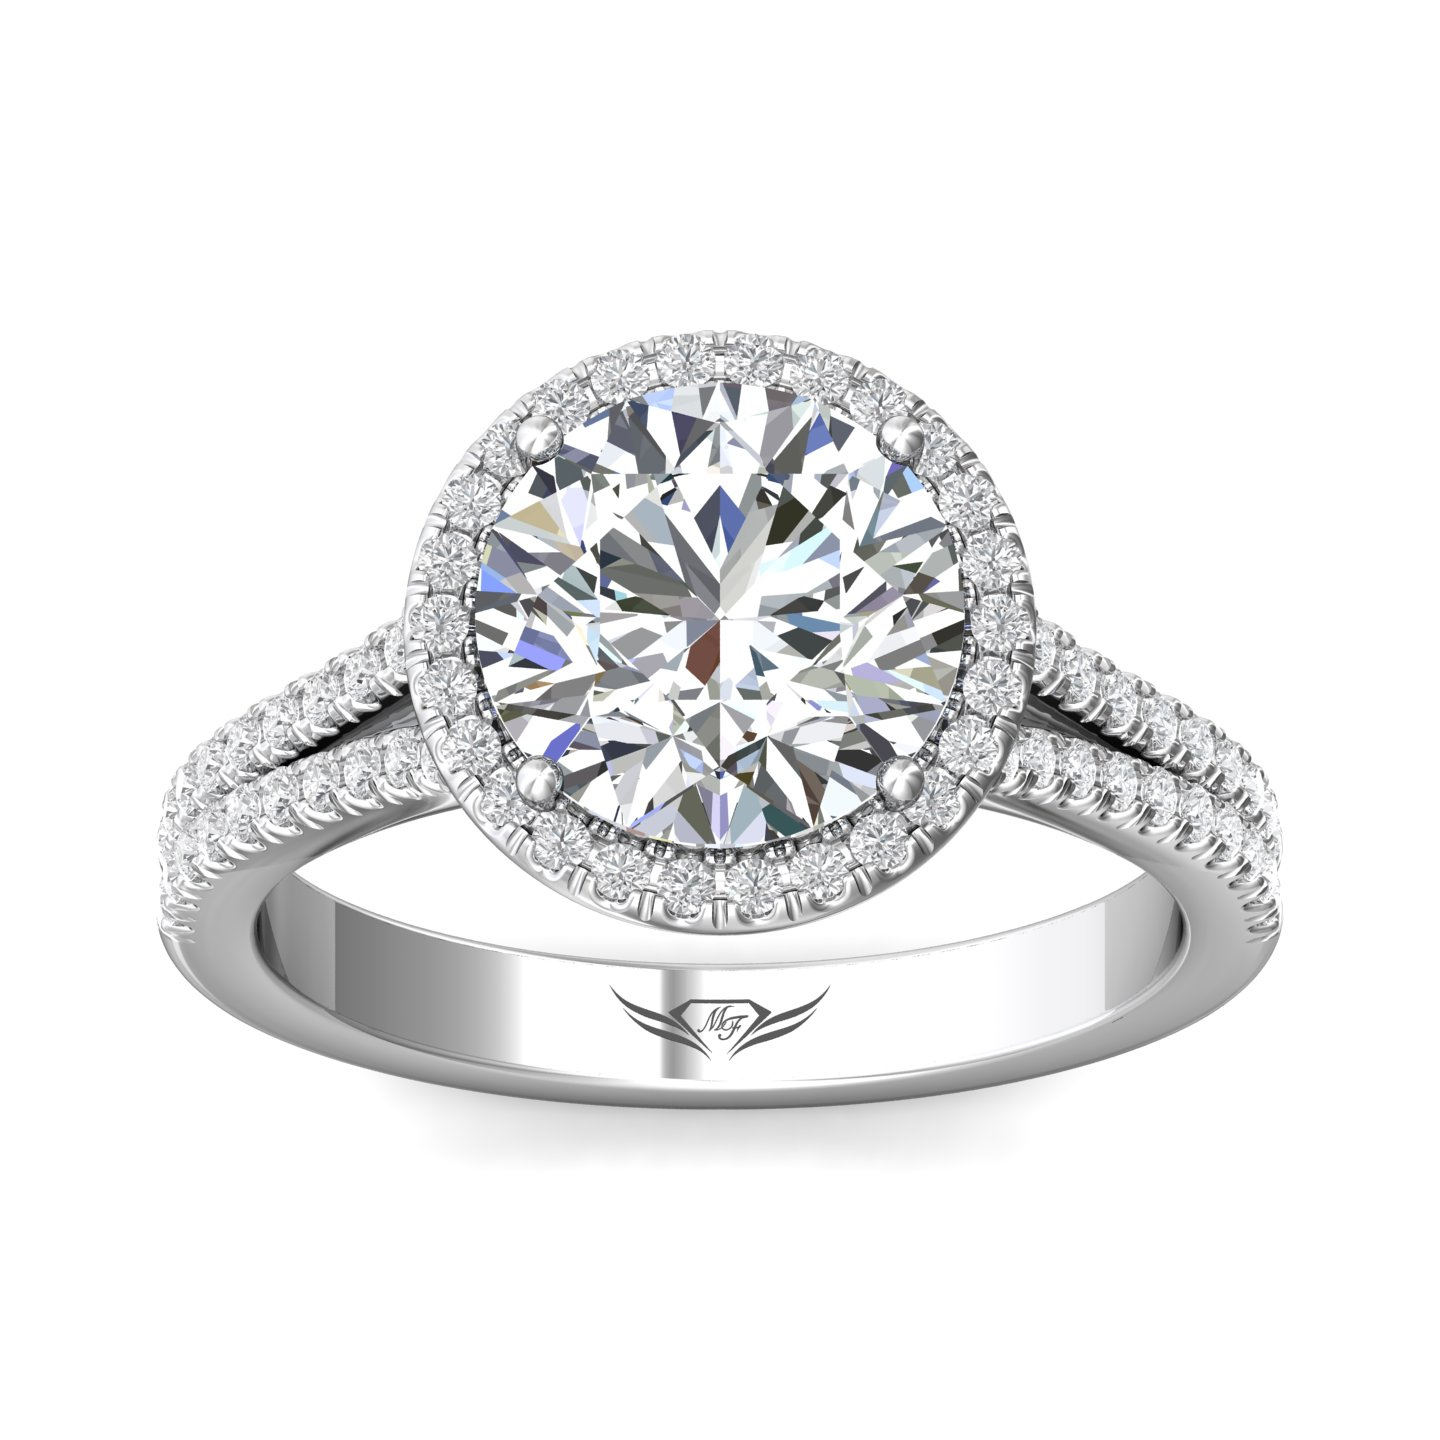 Rings - 14K White Gold FlyerFit Split Shank Engagement Ring - image #3